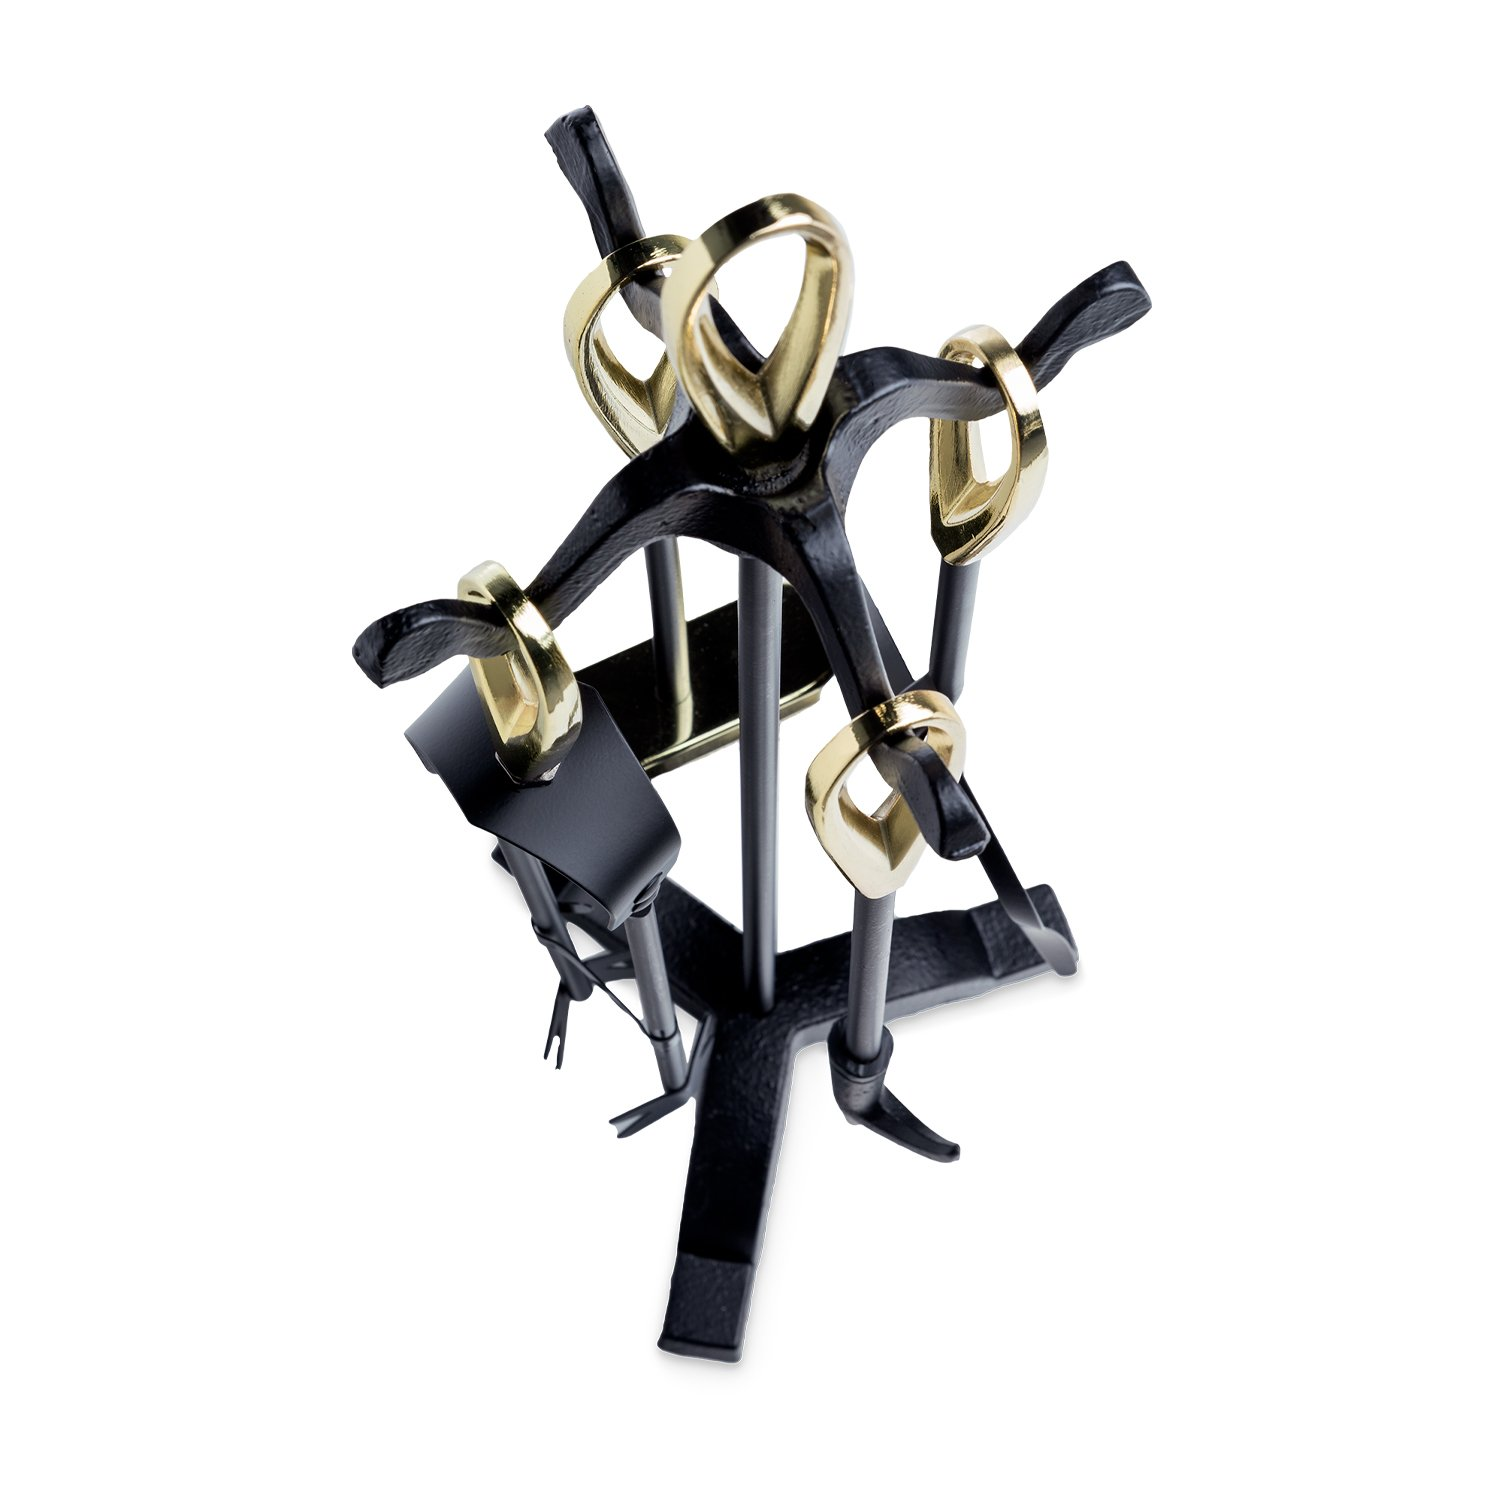 Silverflame Brass & Black Companion Set 5Pc